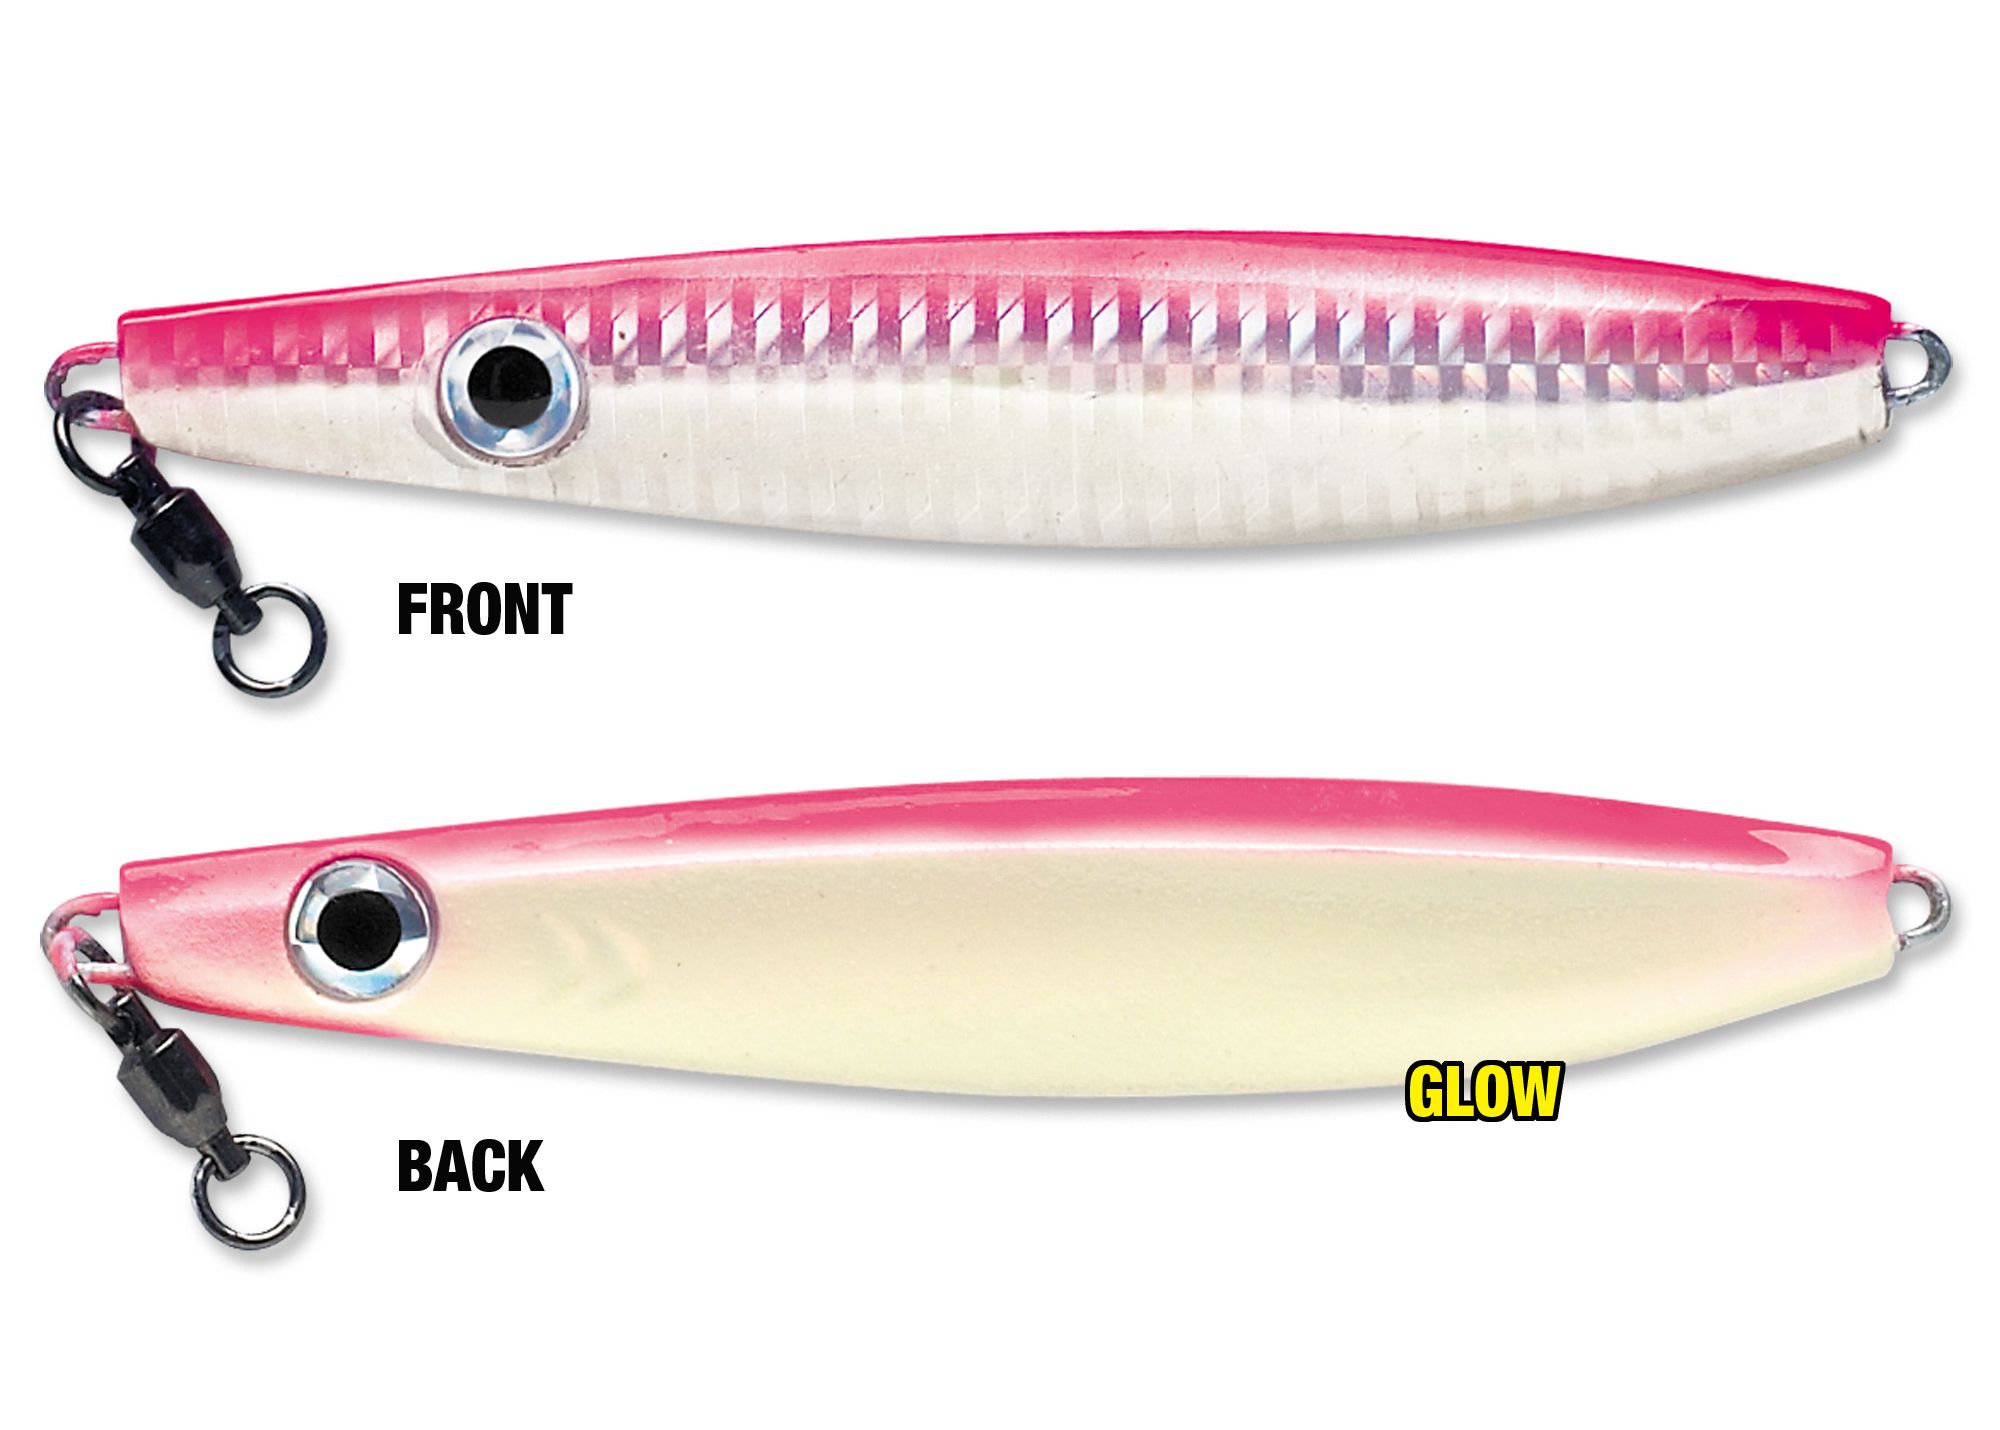 VORTEX SPEED JIG VSJ100 HOT PINK GLOW